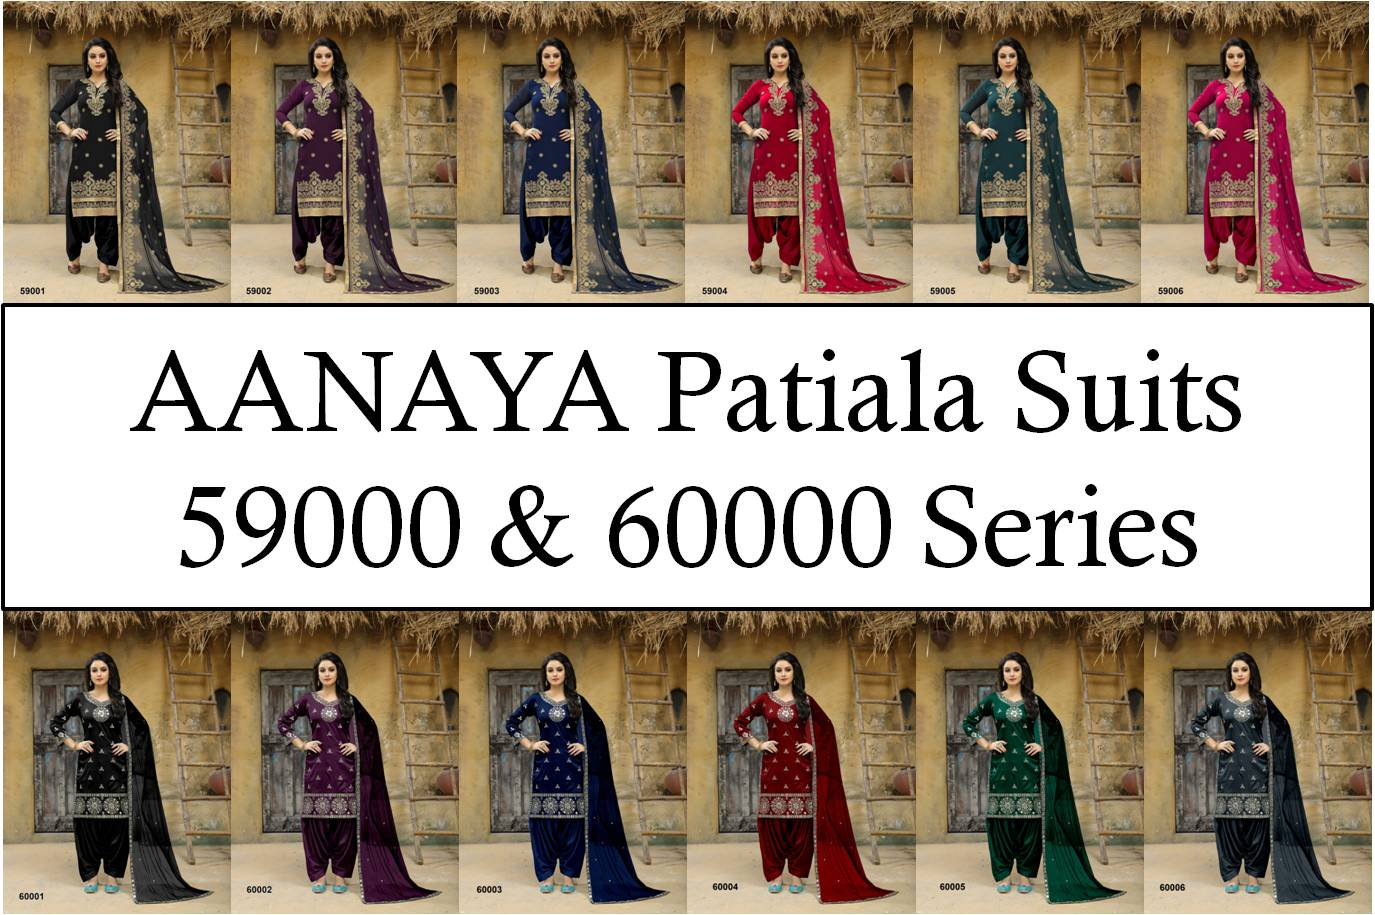 Aanaya Patiala Suits 59000 and 60000 Series